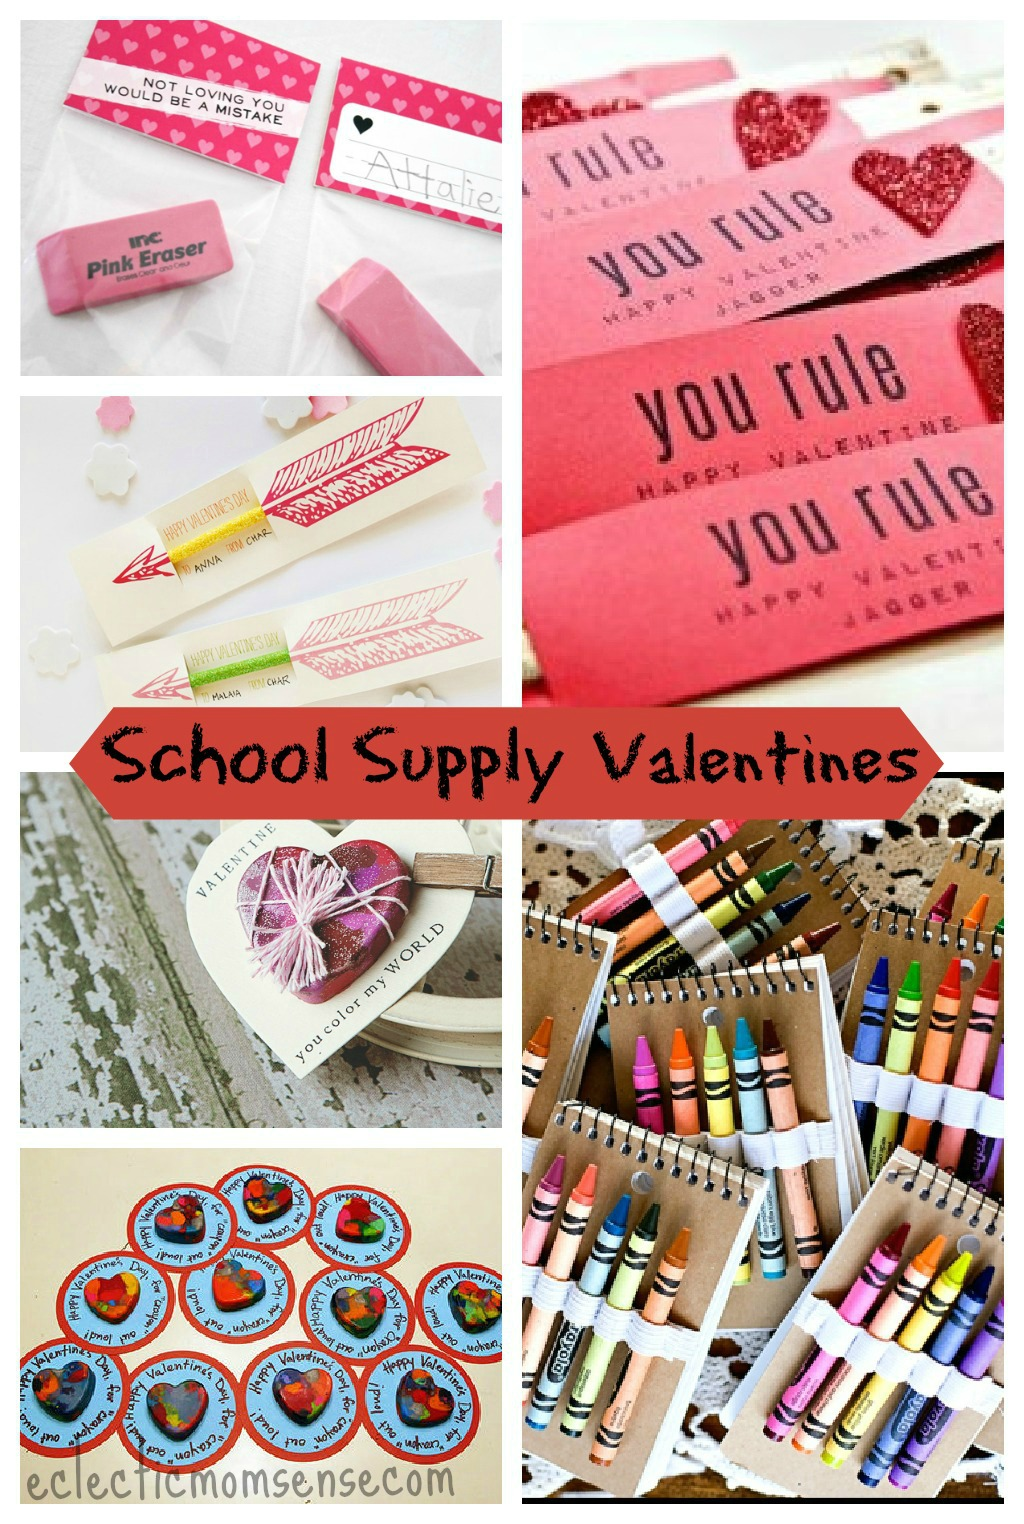 School Supply Valentines Ideas via @eclecticmommy - eclecticmomsense.com